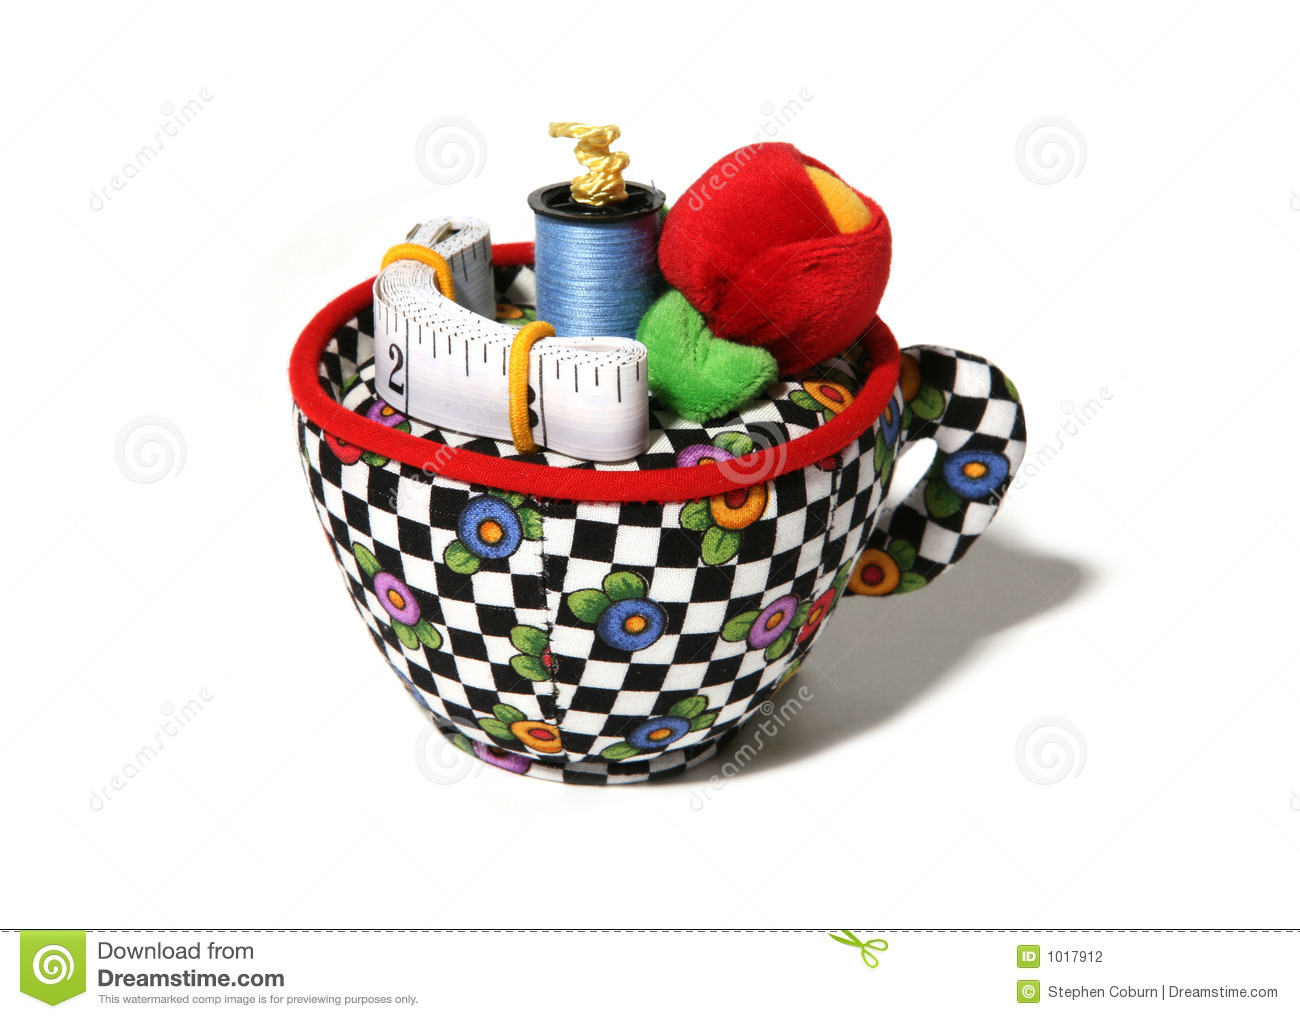 Sewing supplies stock photography image 1017912 for Sewing materials